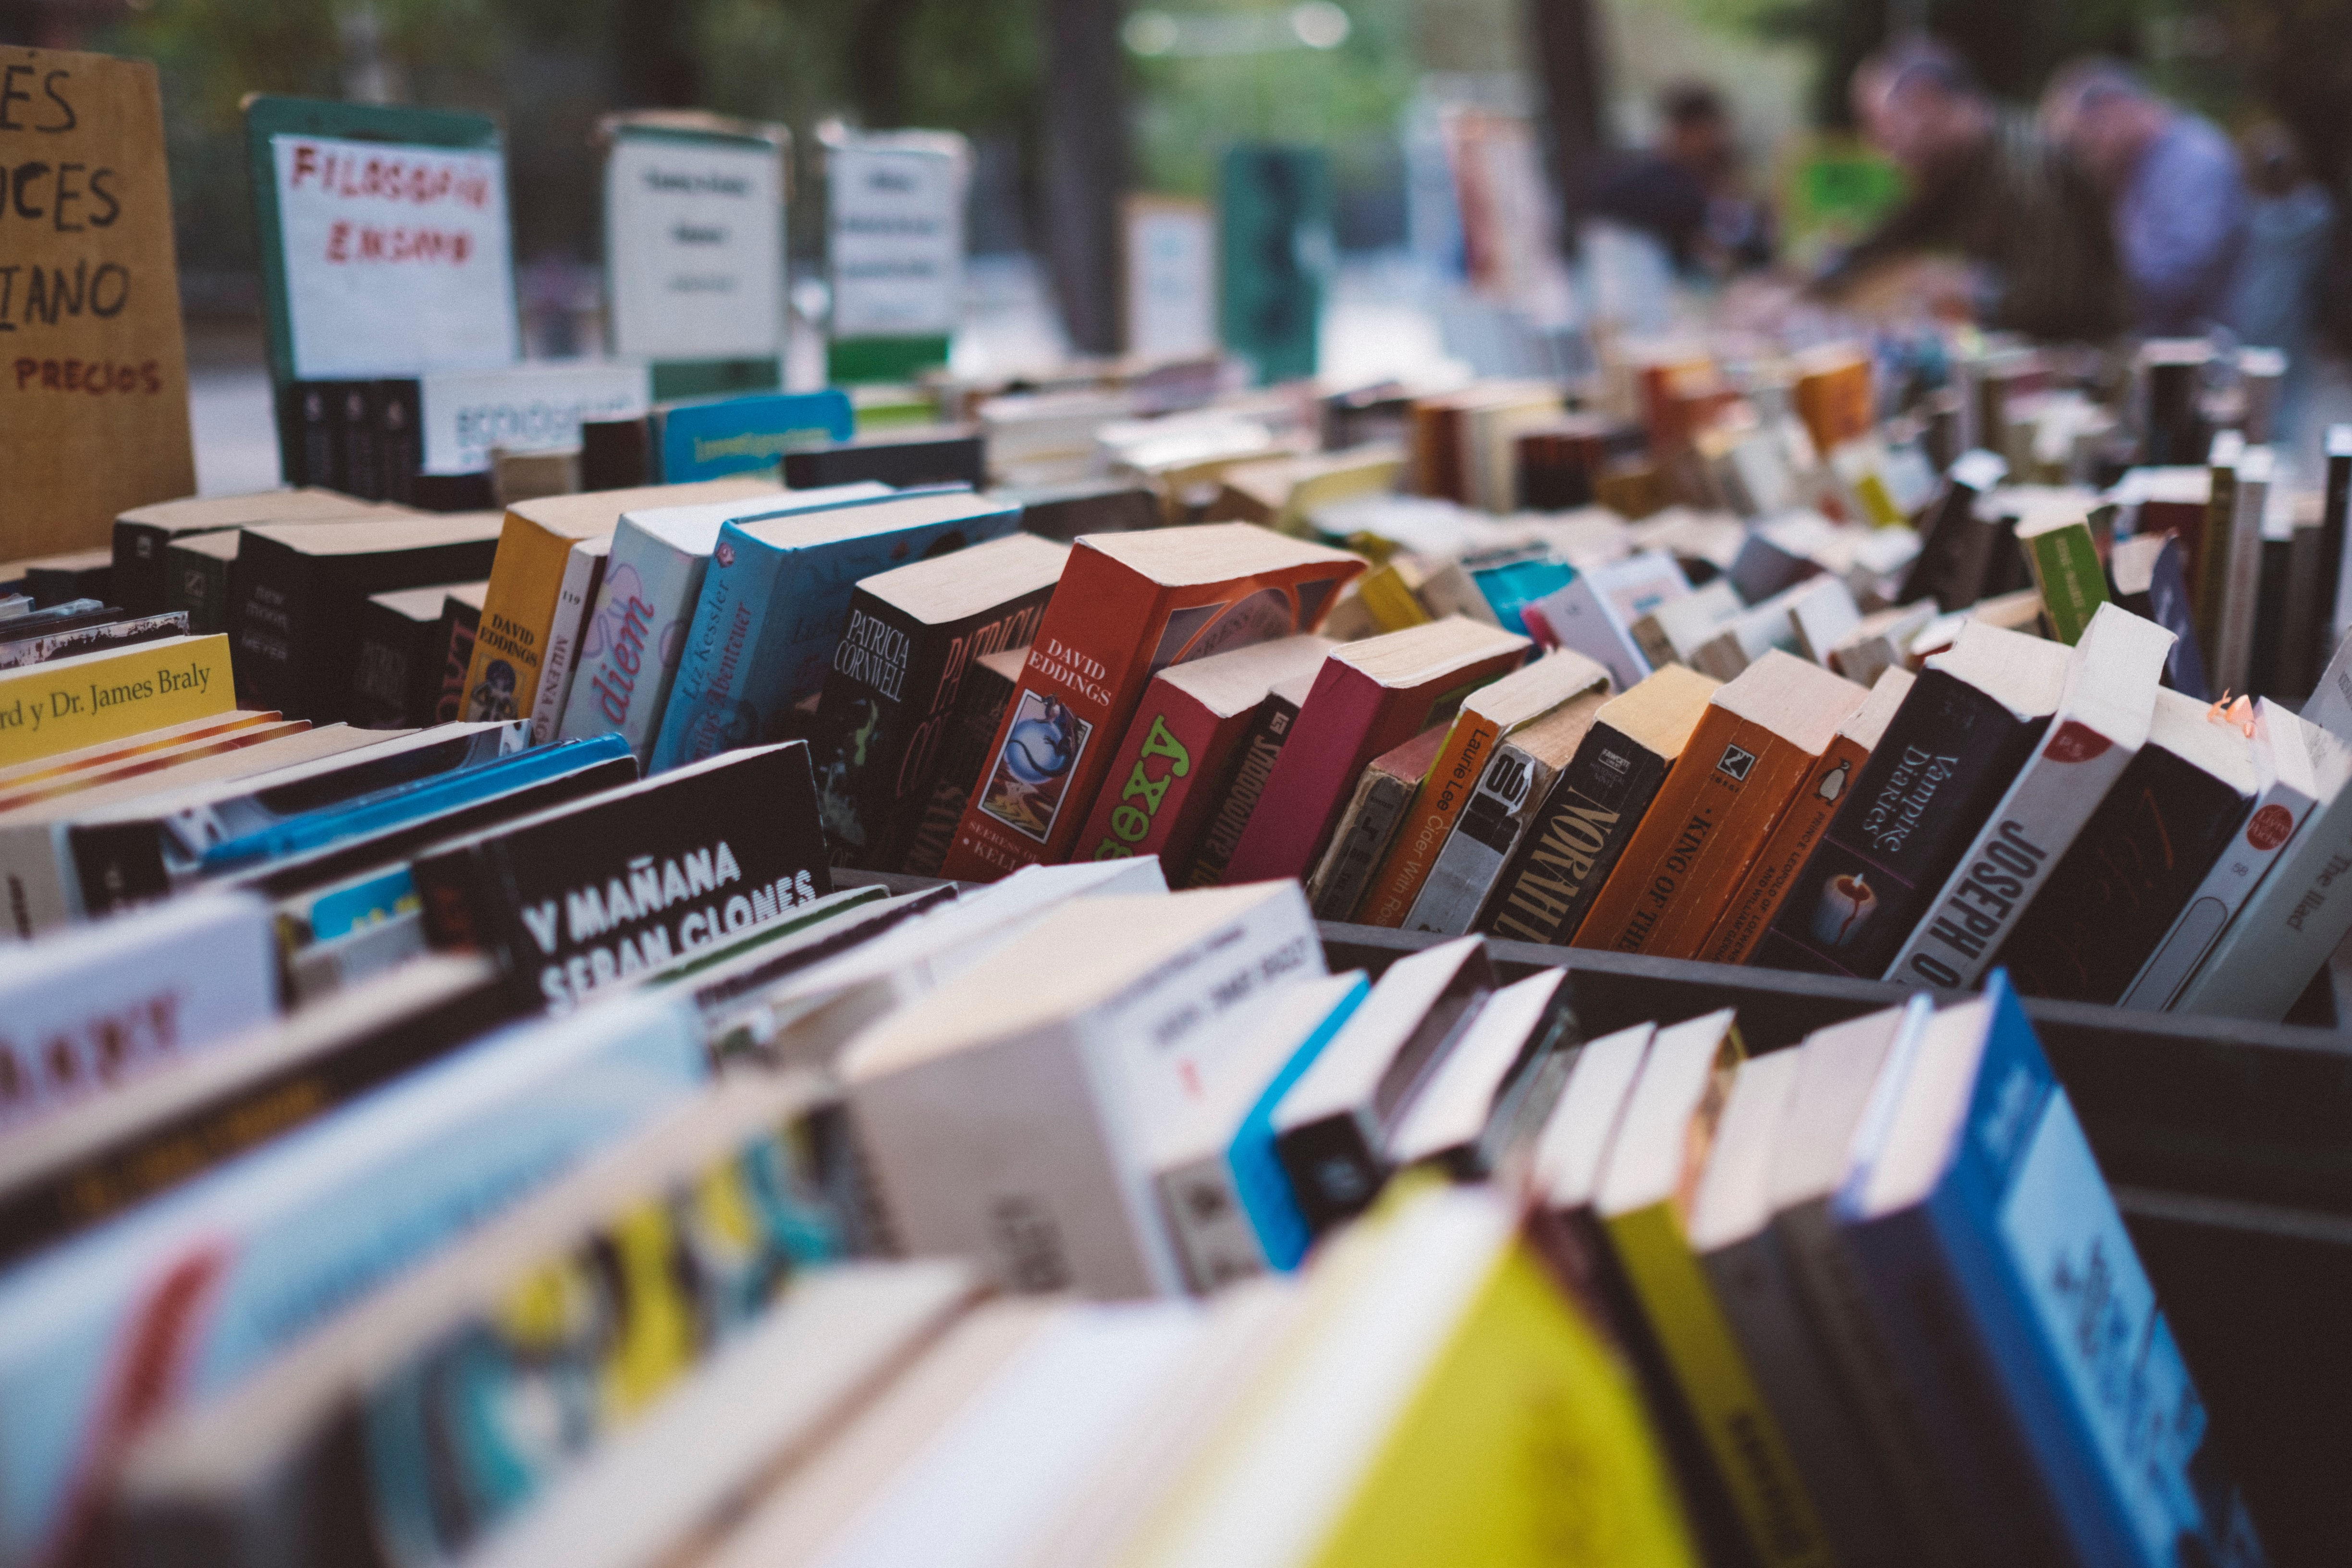 Books in boxes at a book sale.